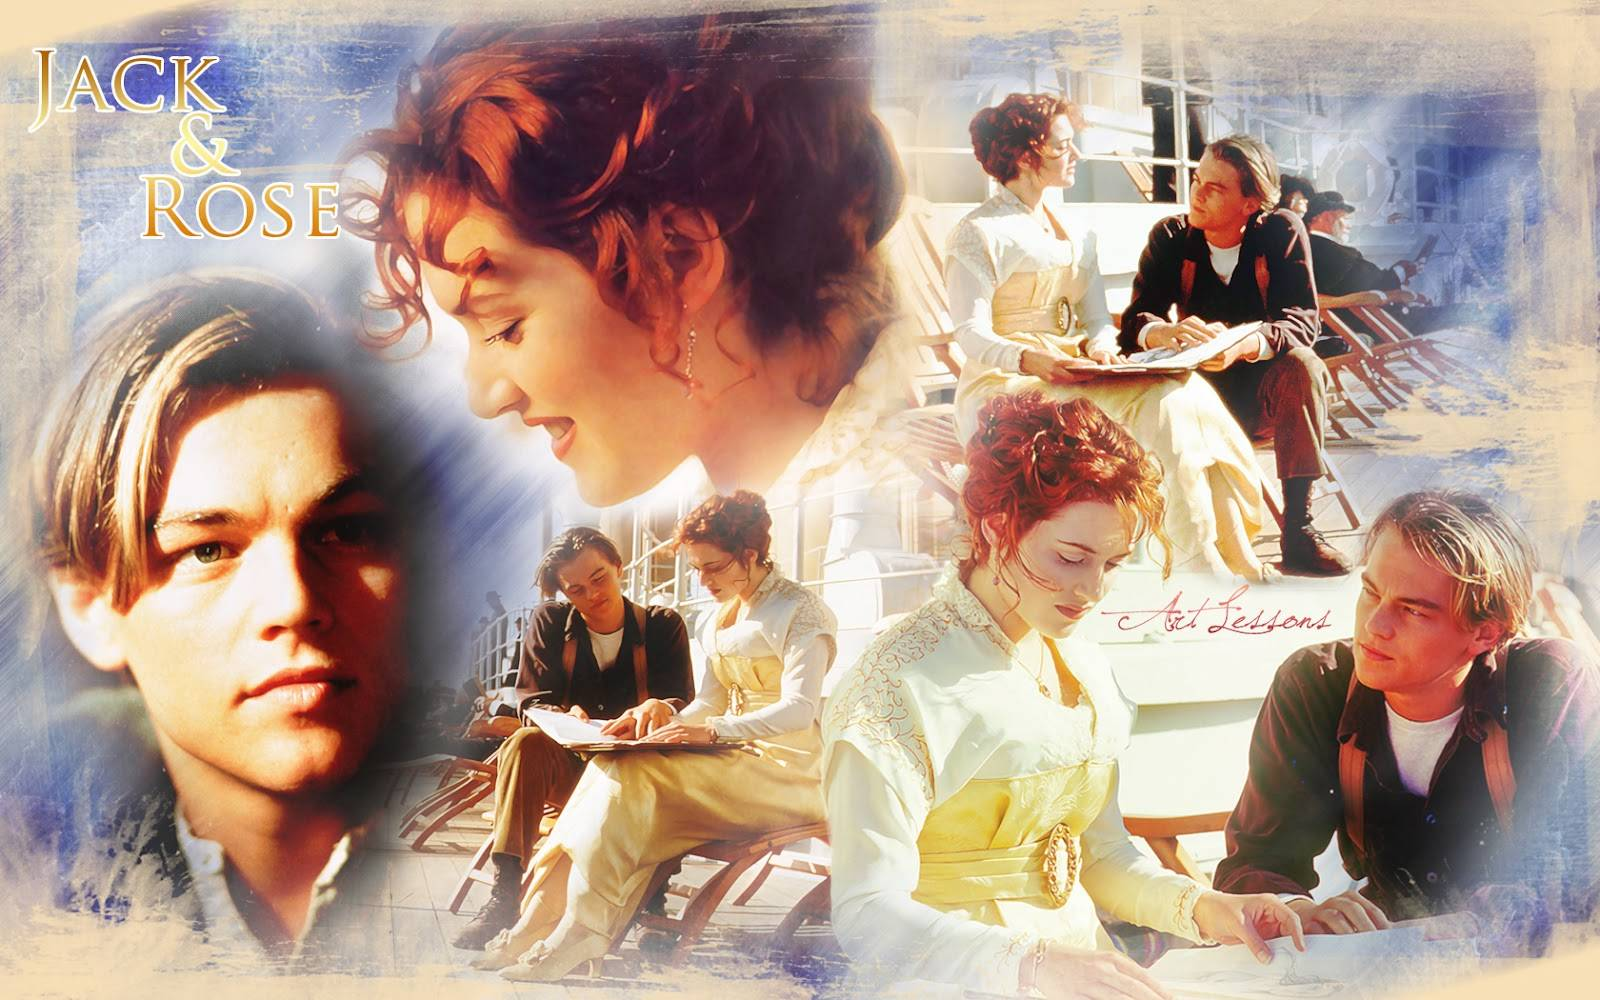 Jack Rose Wallpaper A Wallpaper of Jack and Rose 1600x1000